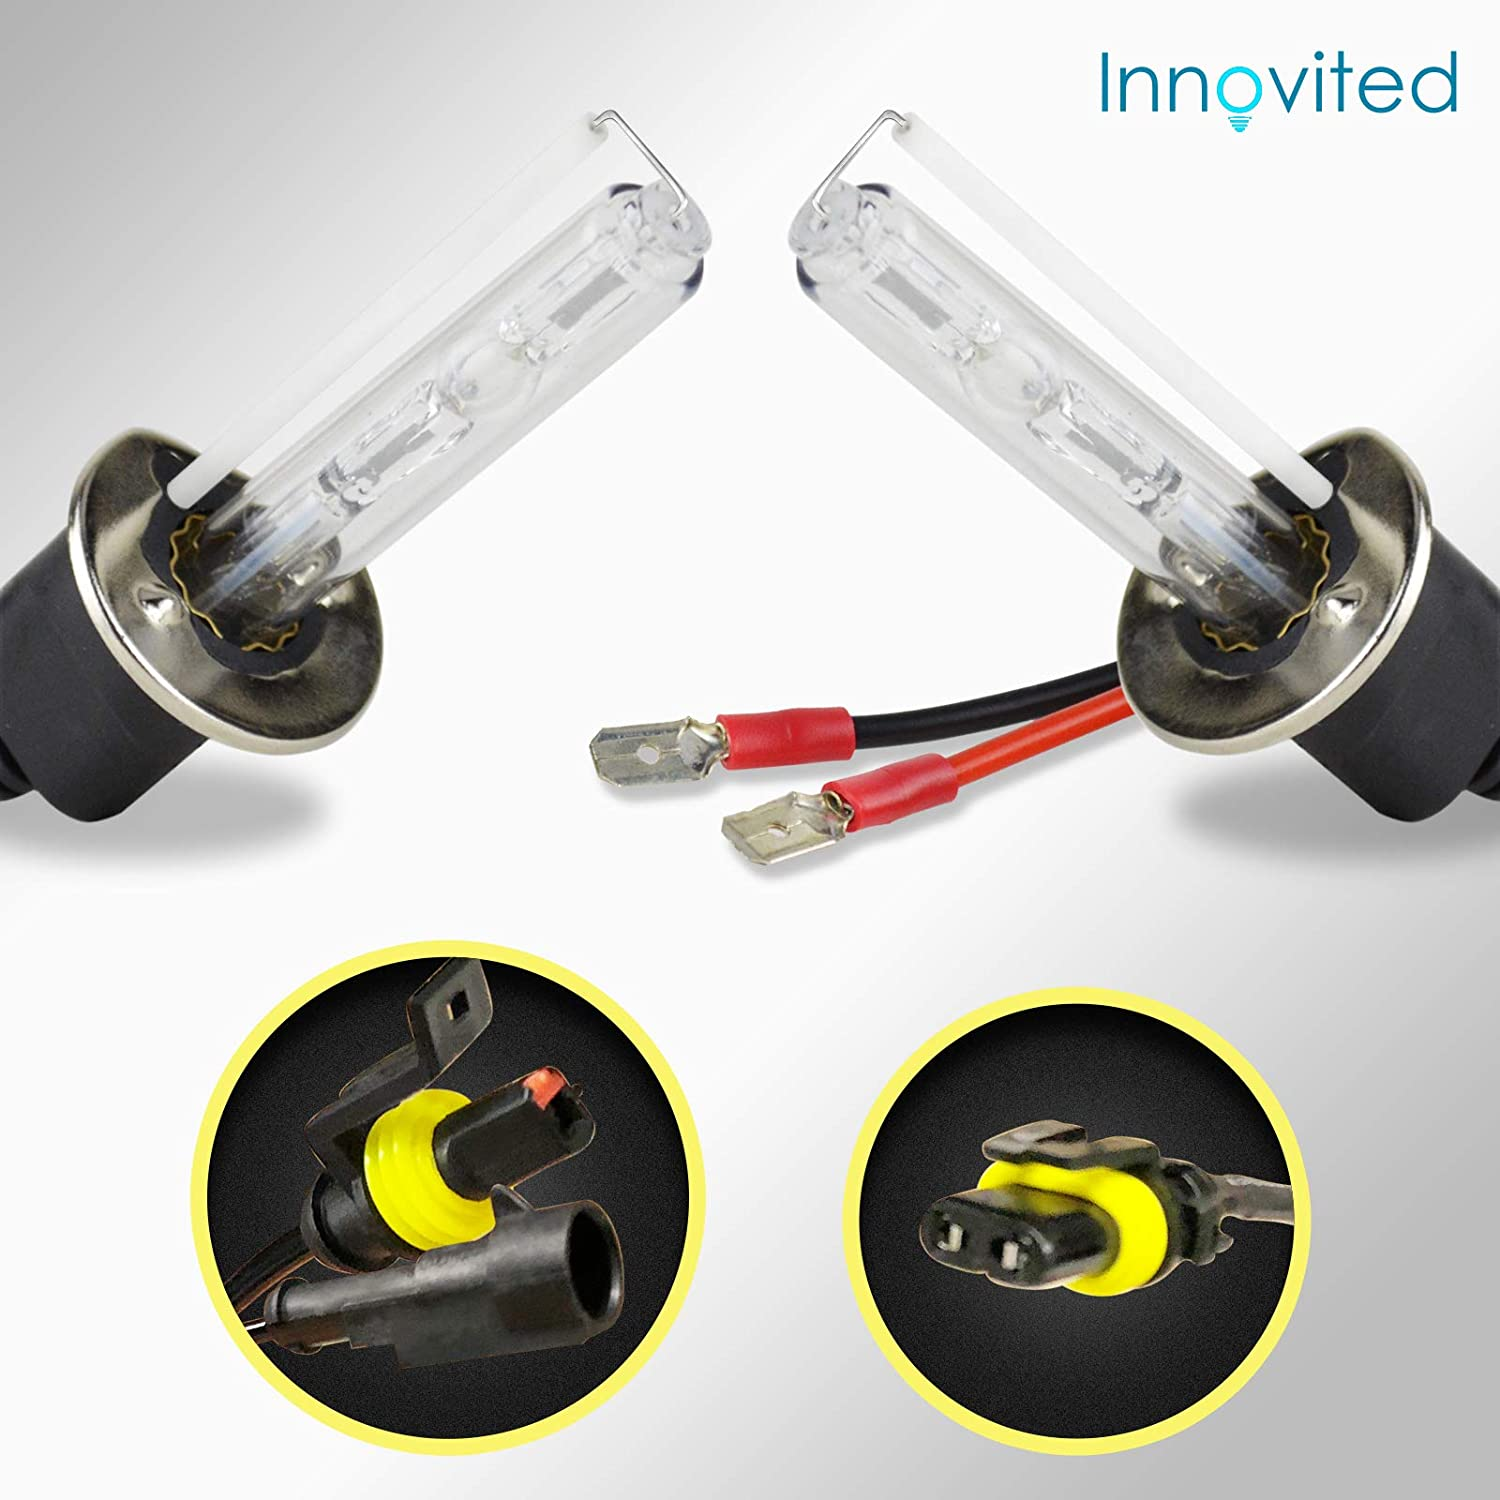 Innovited HID Xenon Replacement Bulbs Lamp H7 5000K